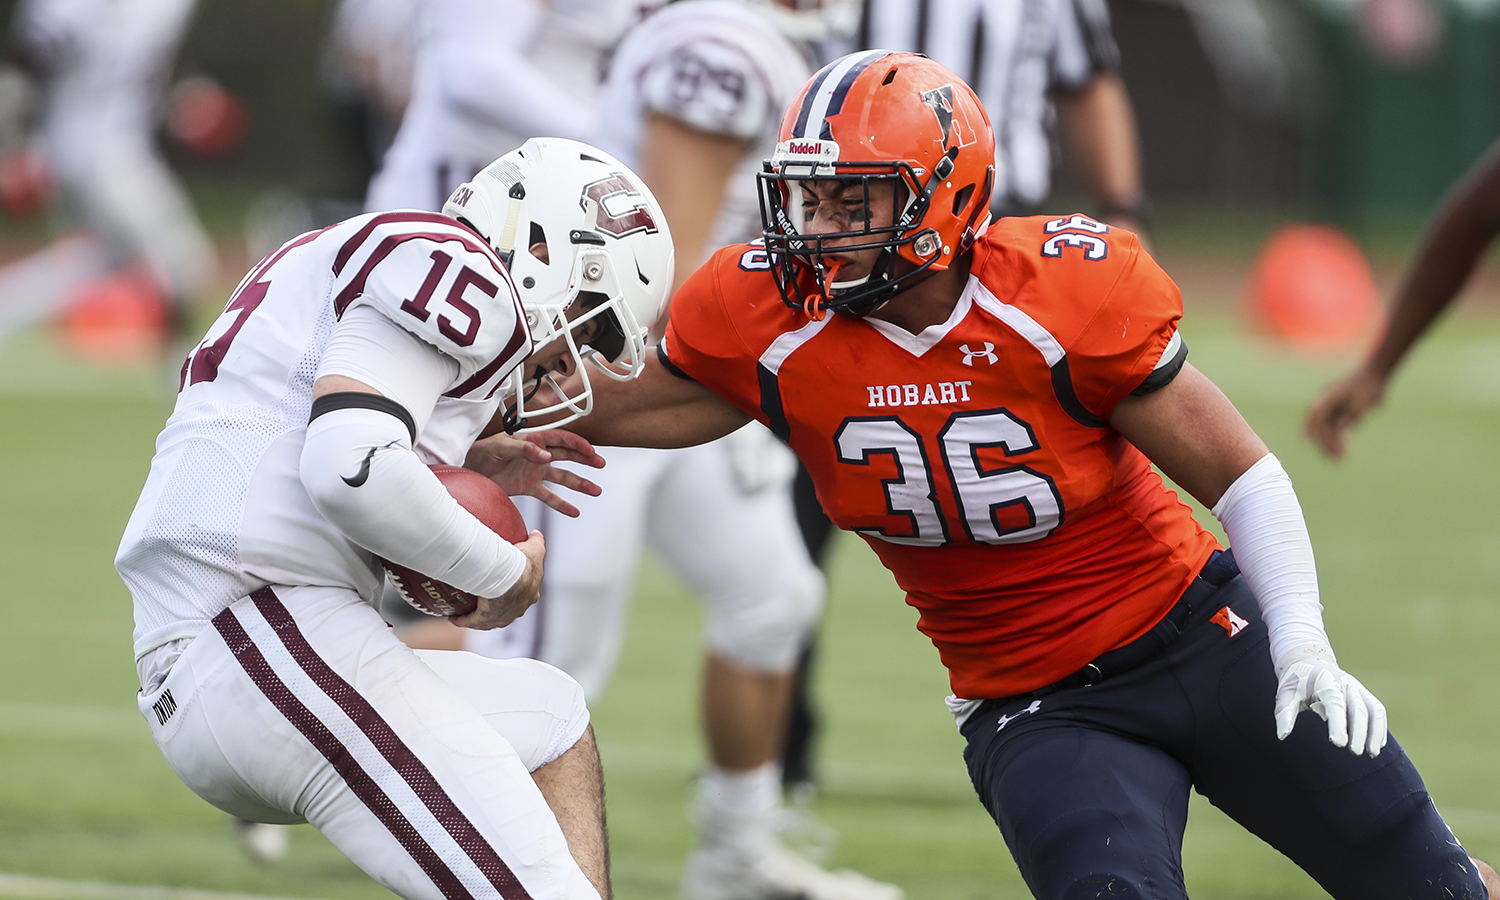 Linebacker Bryan Aguilar '22 made a tackle during Hobart's win over Union College on Boswell Field.